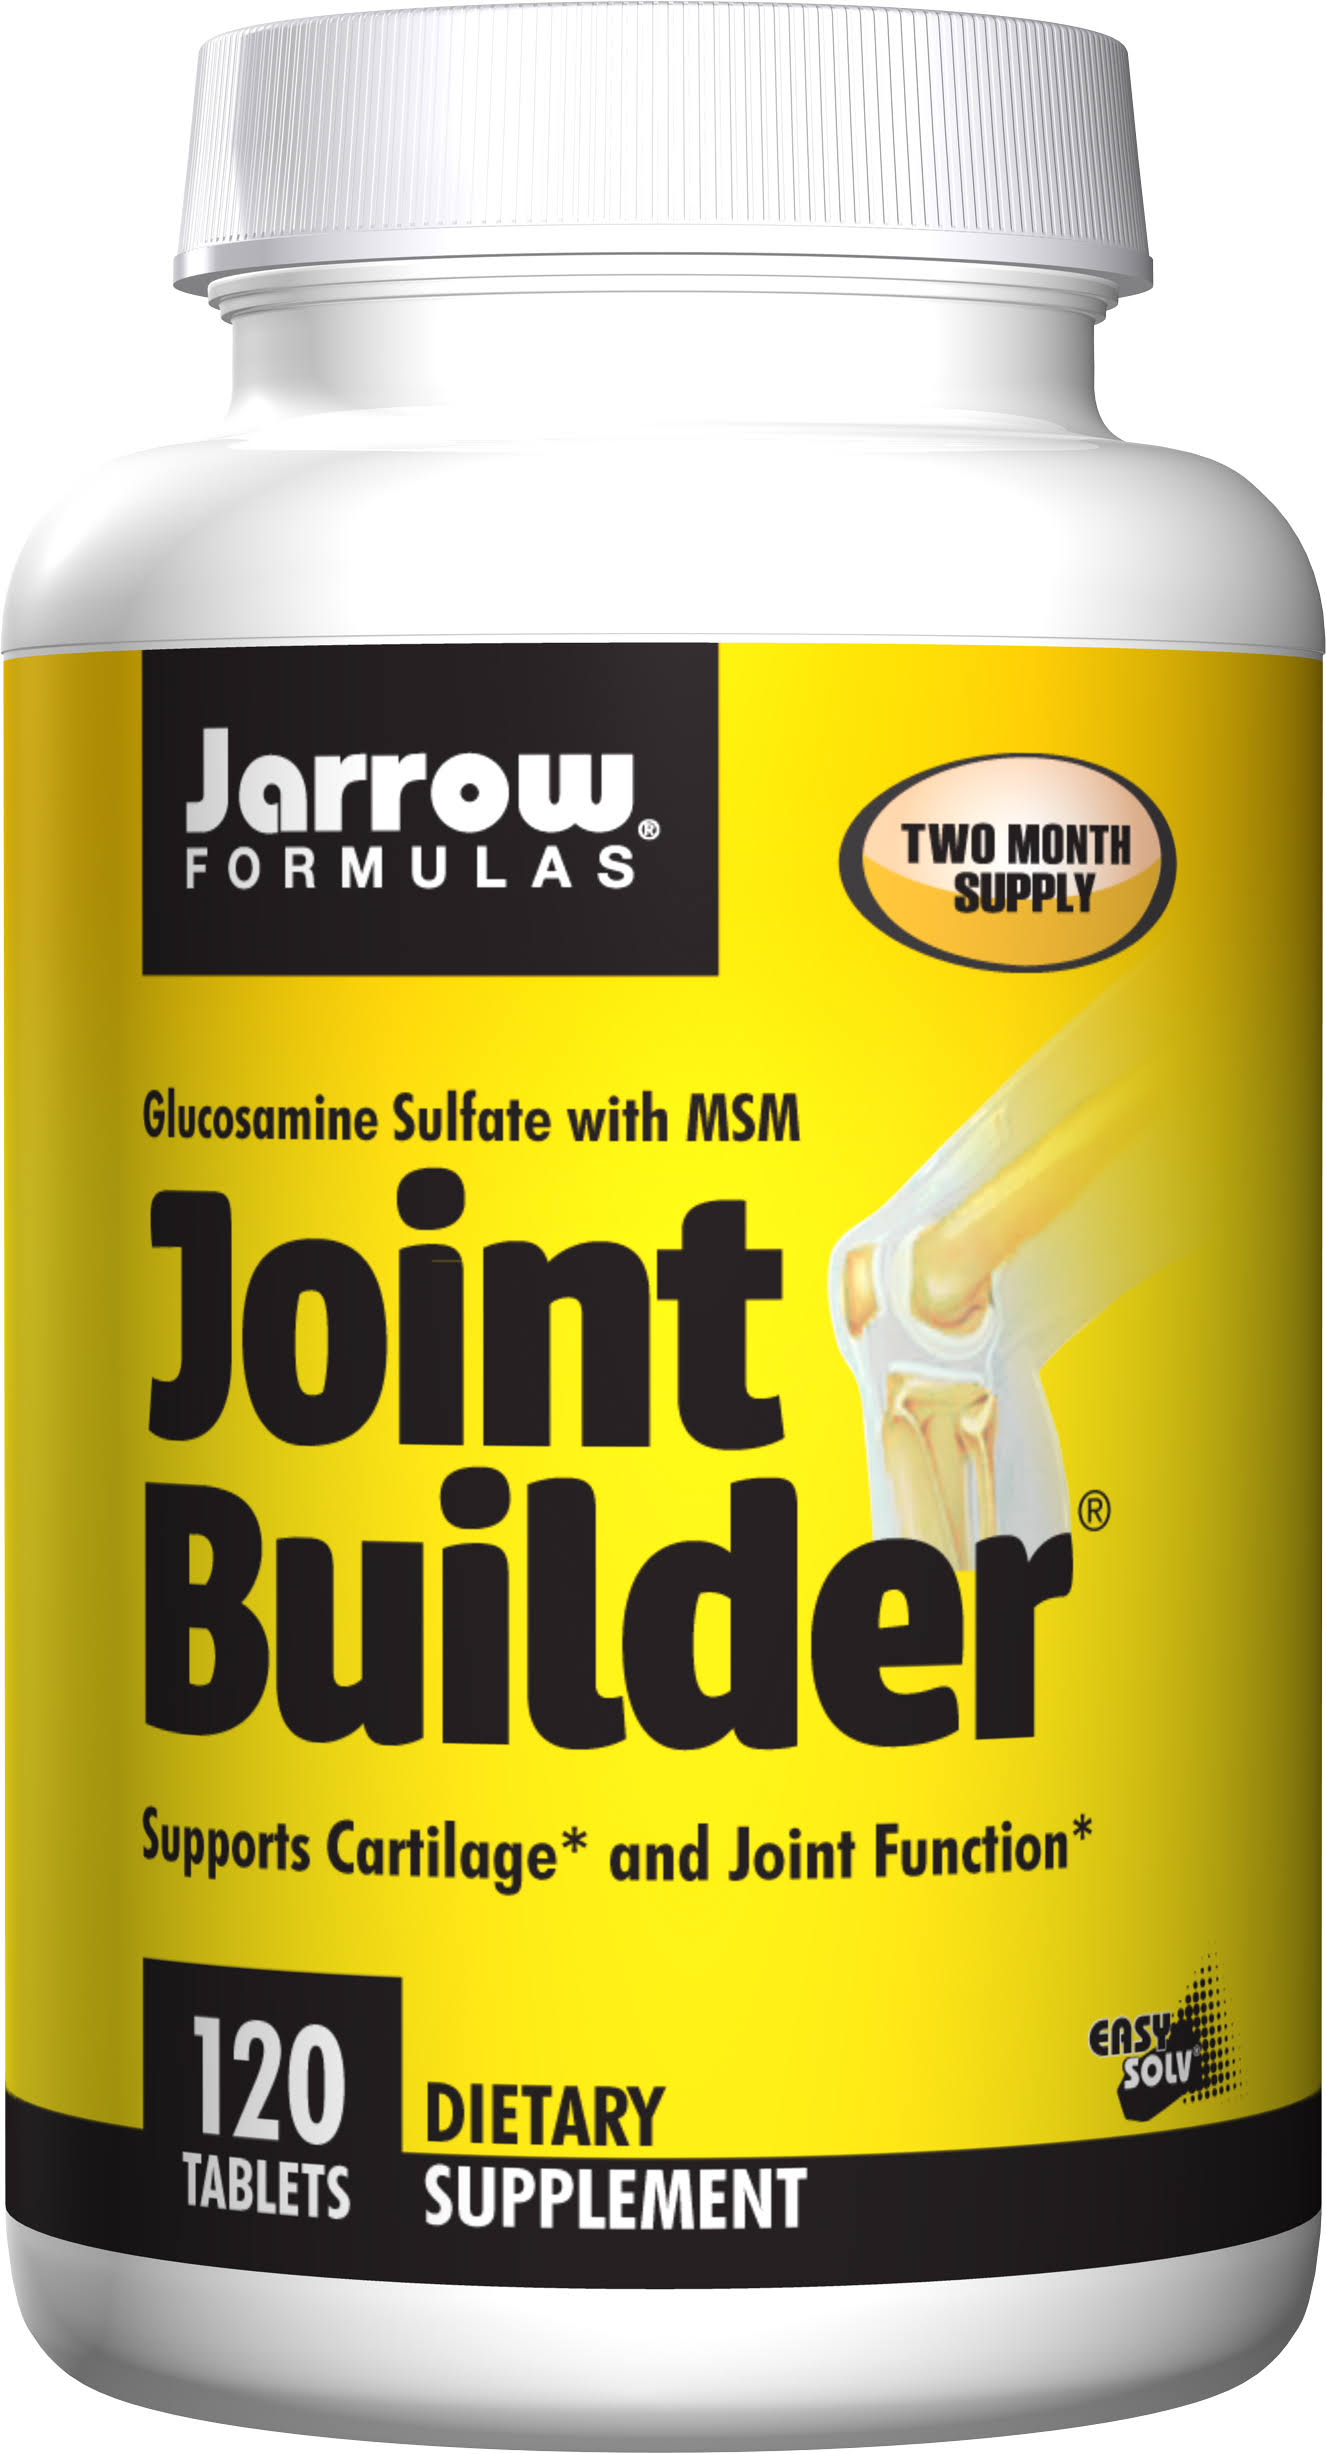 Jarrow Formulas Glucosamine Sulfate with MSM Joint Builder - 750mg, 120 Tablets